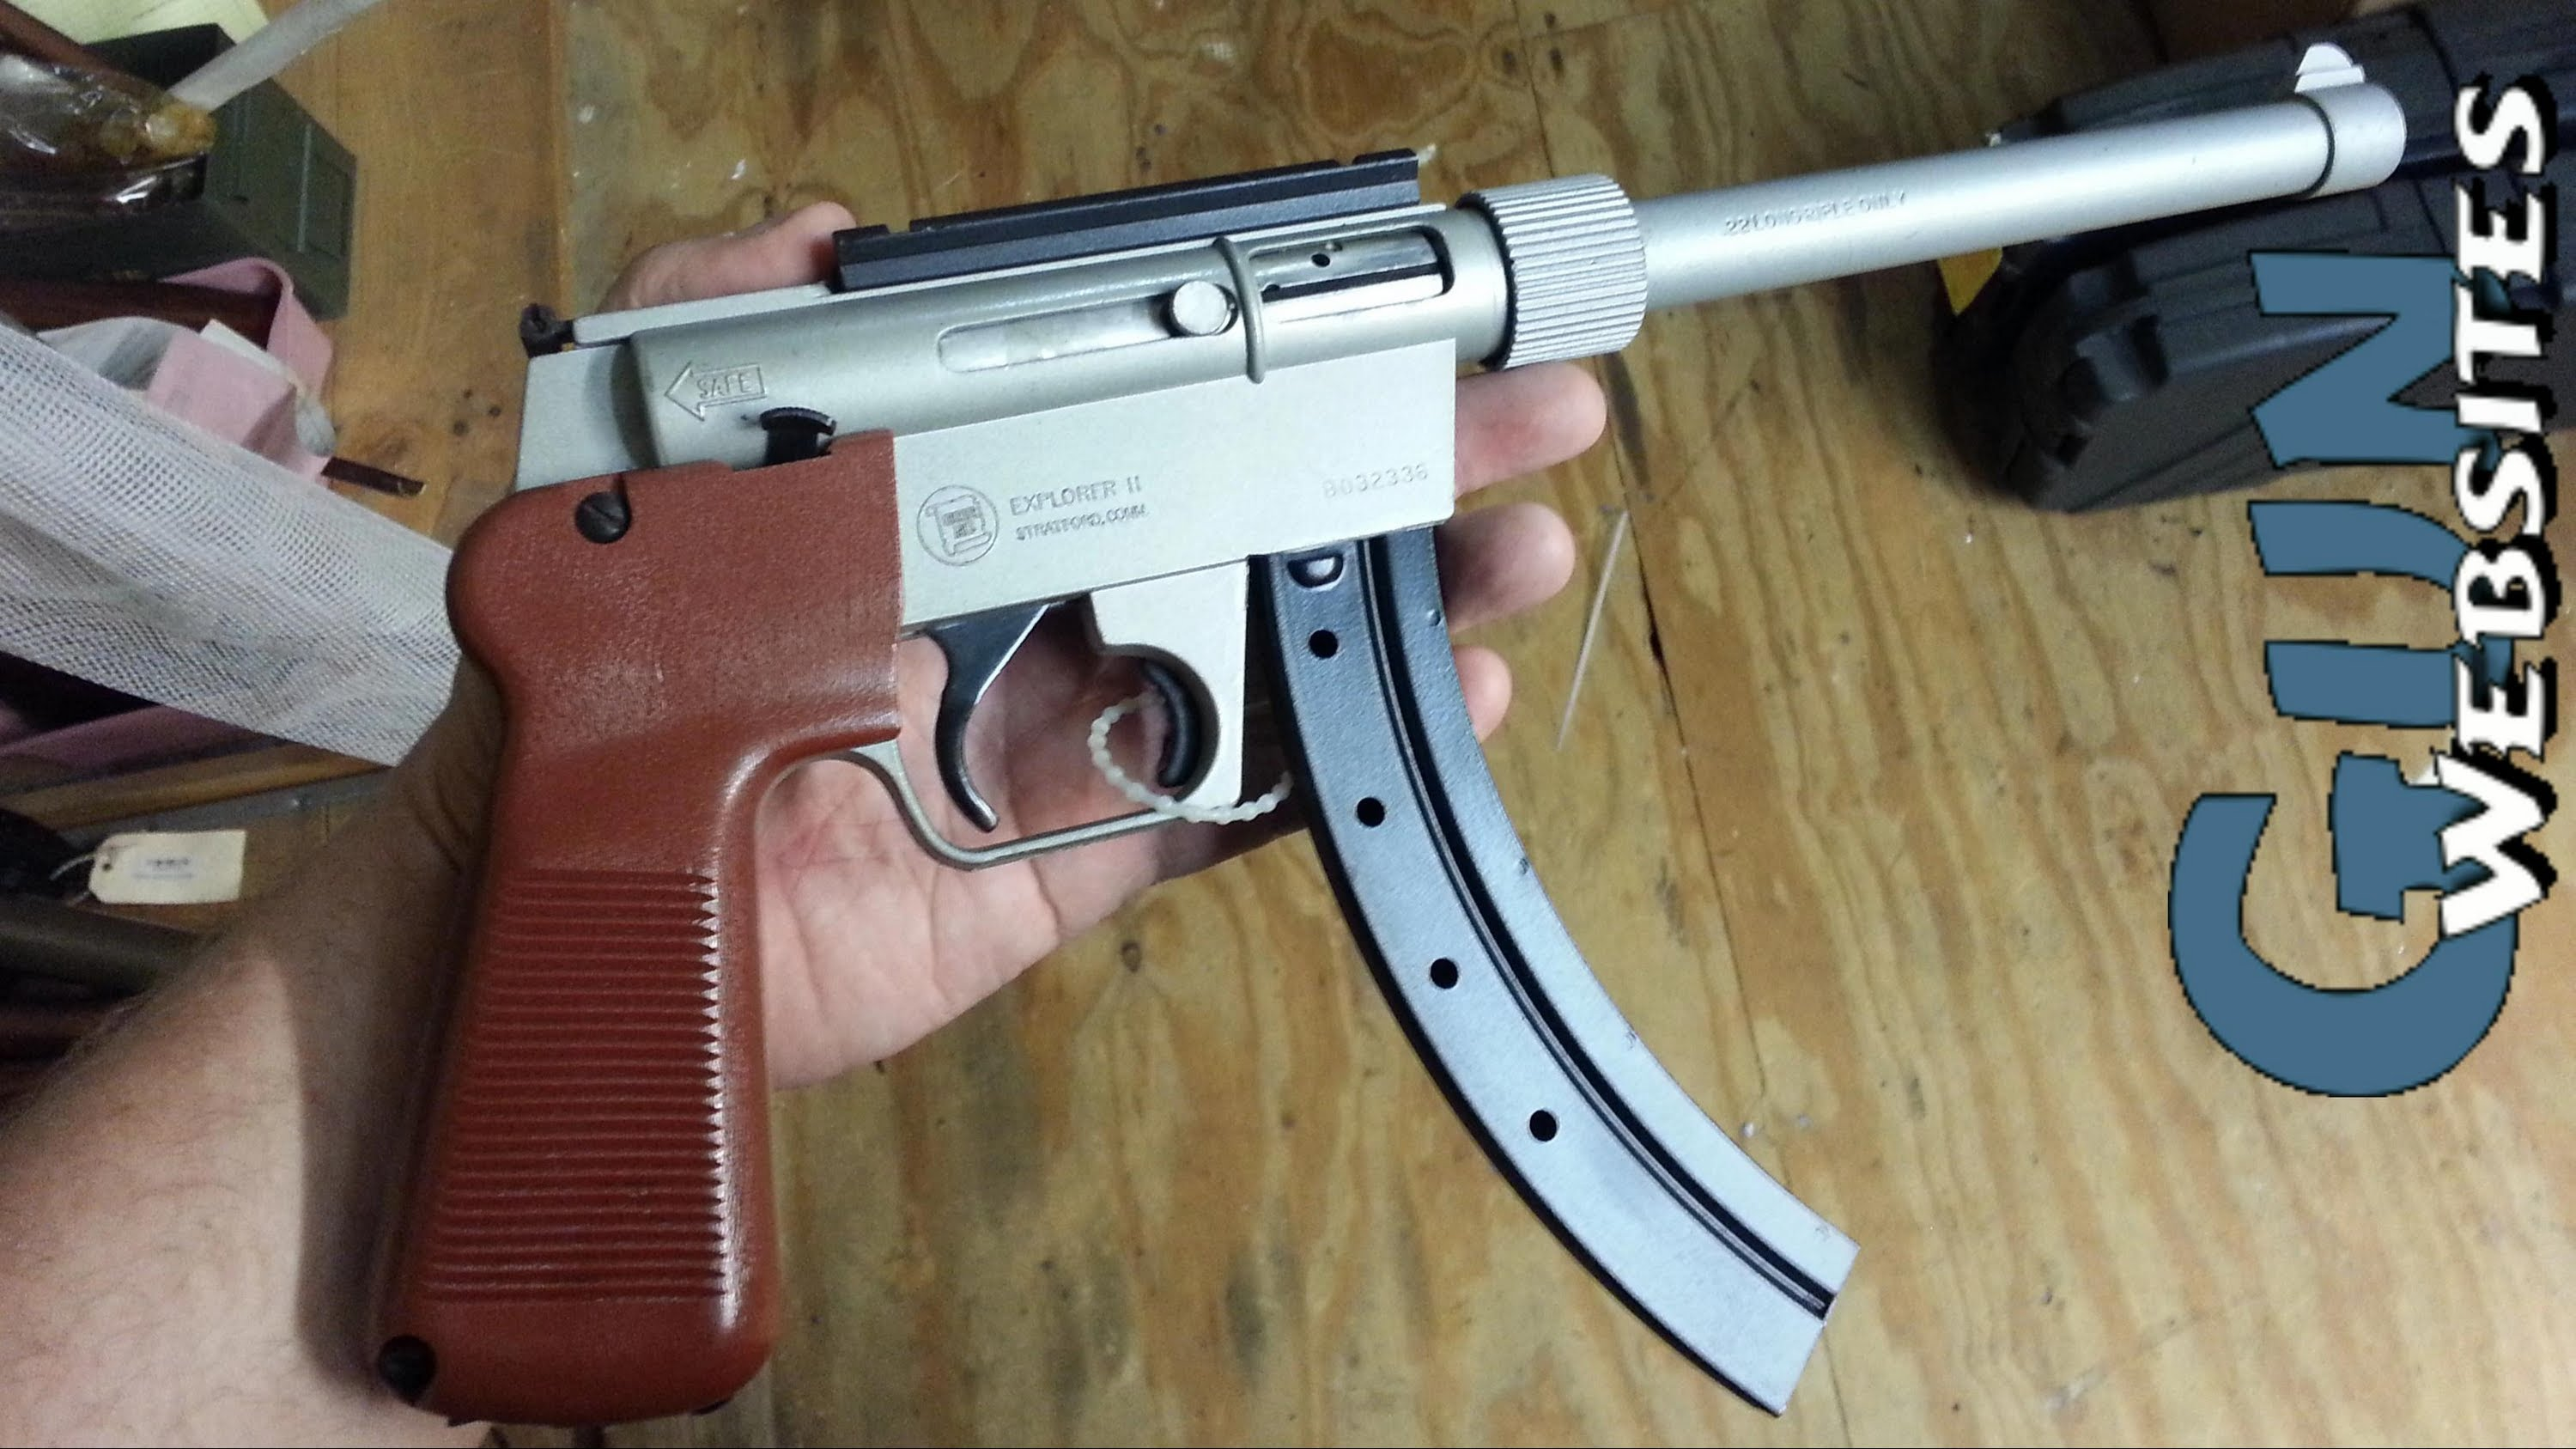 Explorer II  22 Survival Pistol from Charter Arms